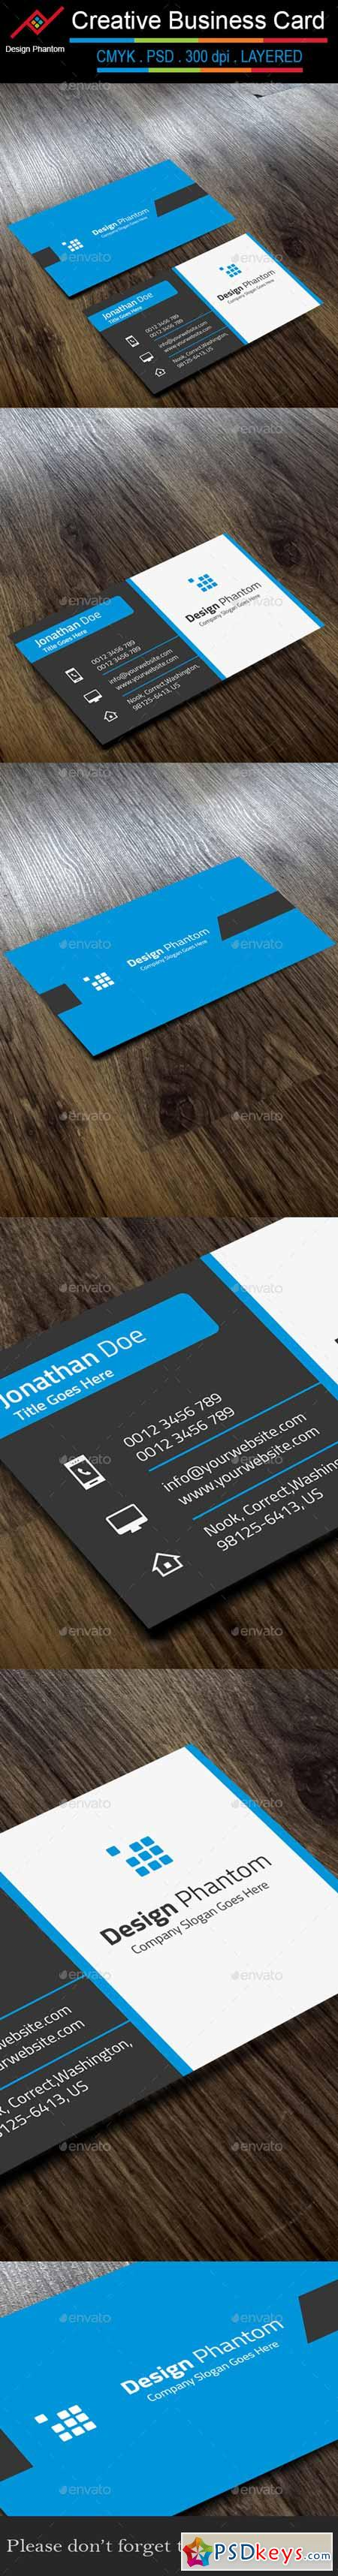 Creative Business Card 9678308